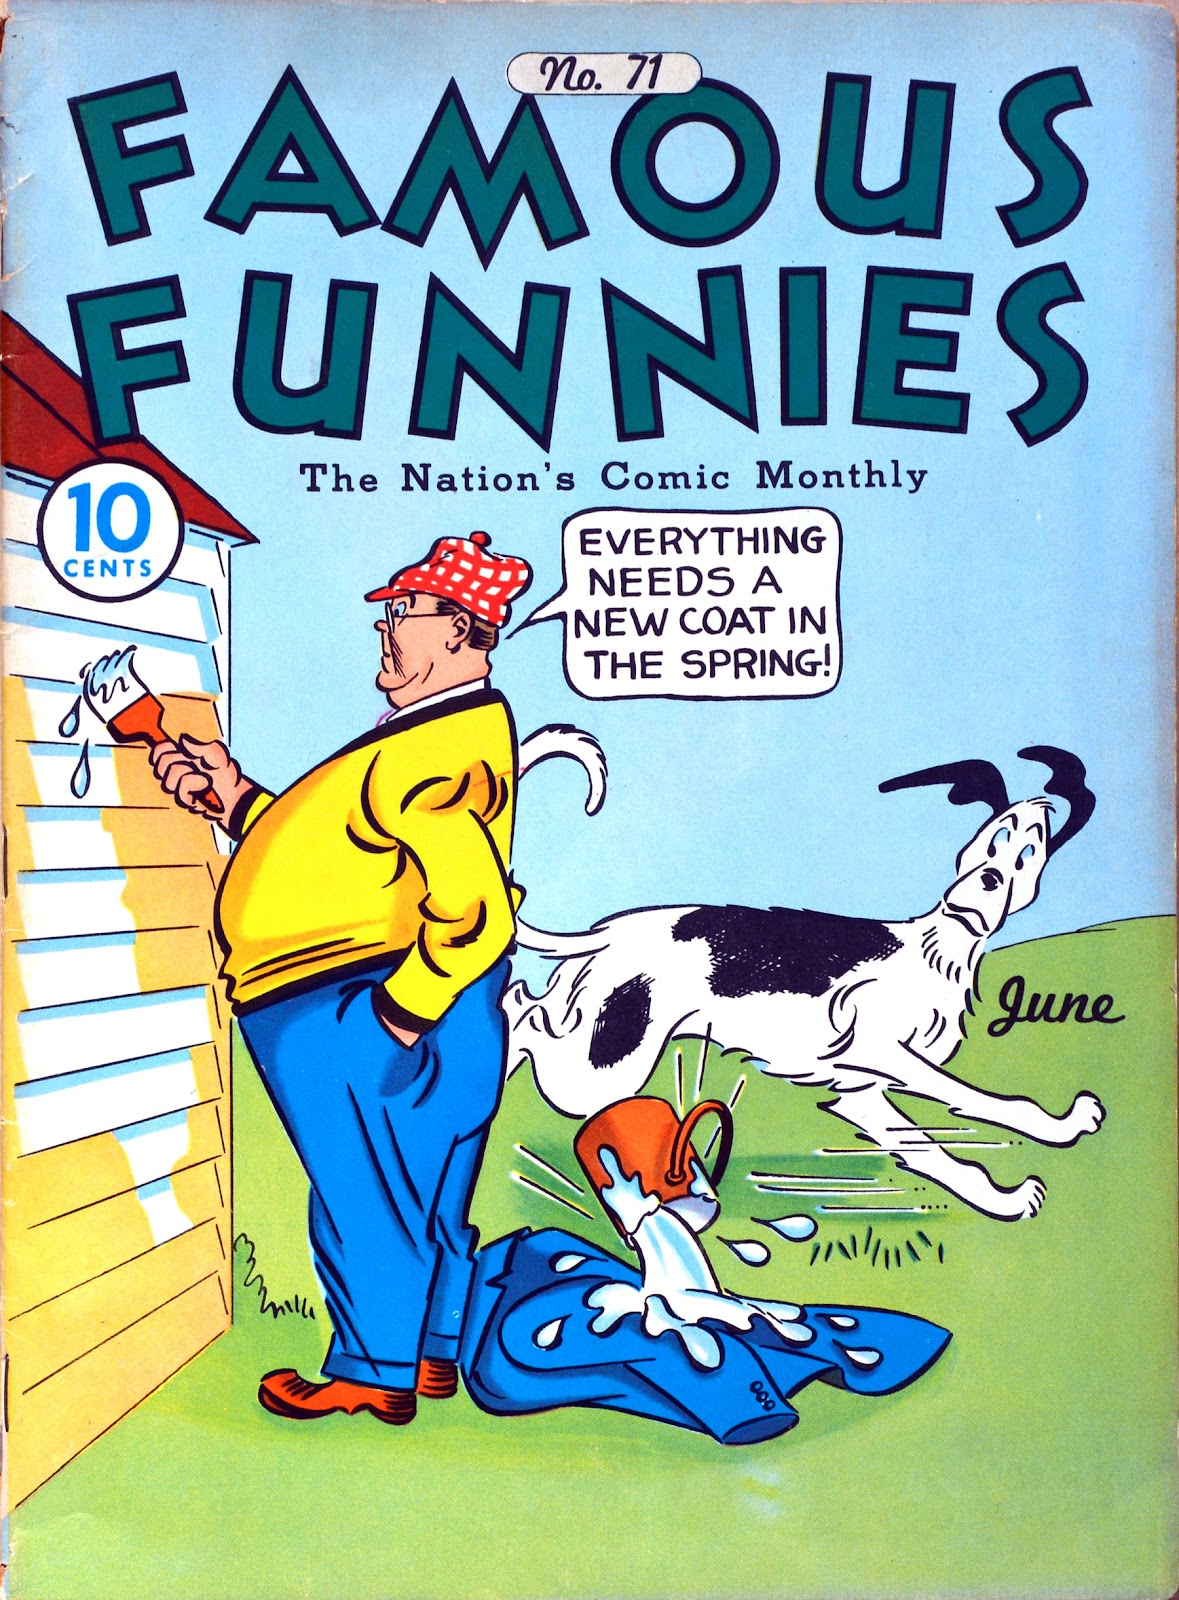 Read online Famous Funnies comic -  Issue #71 - 1